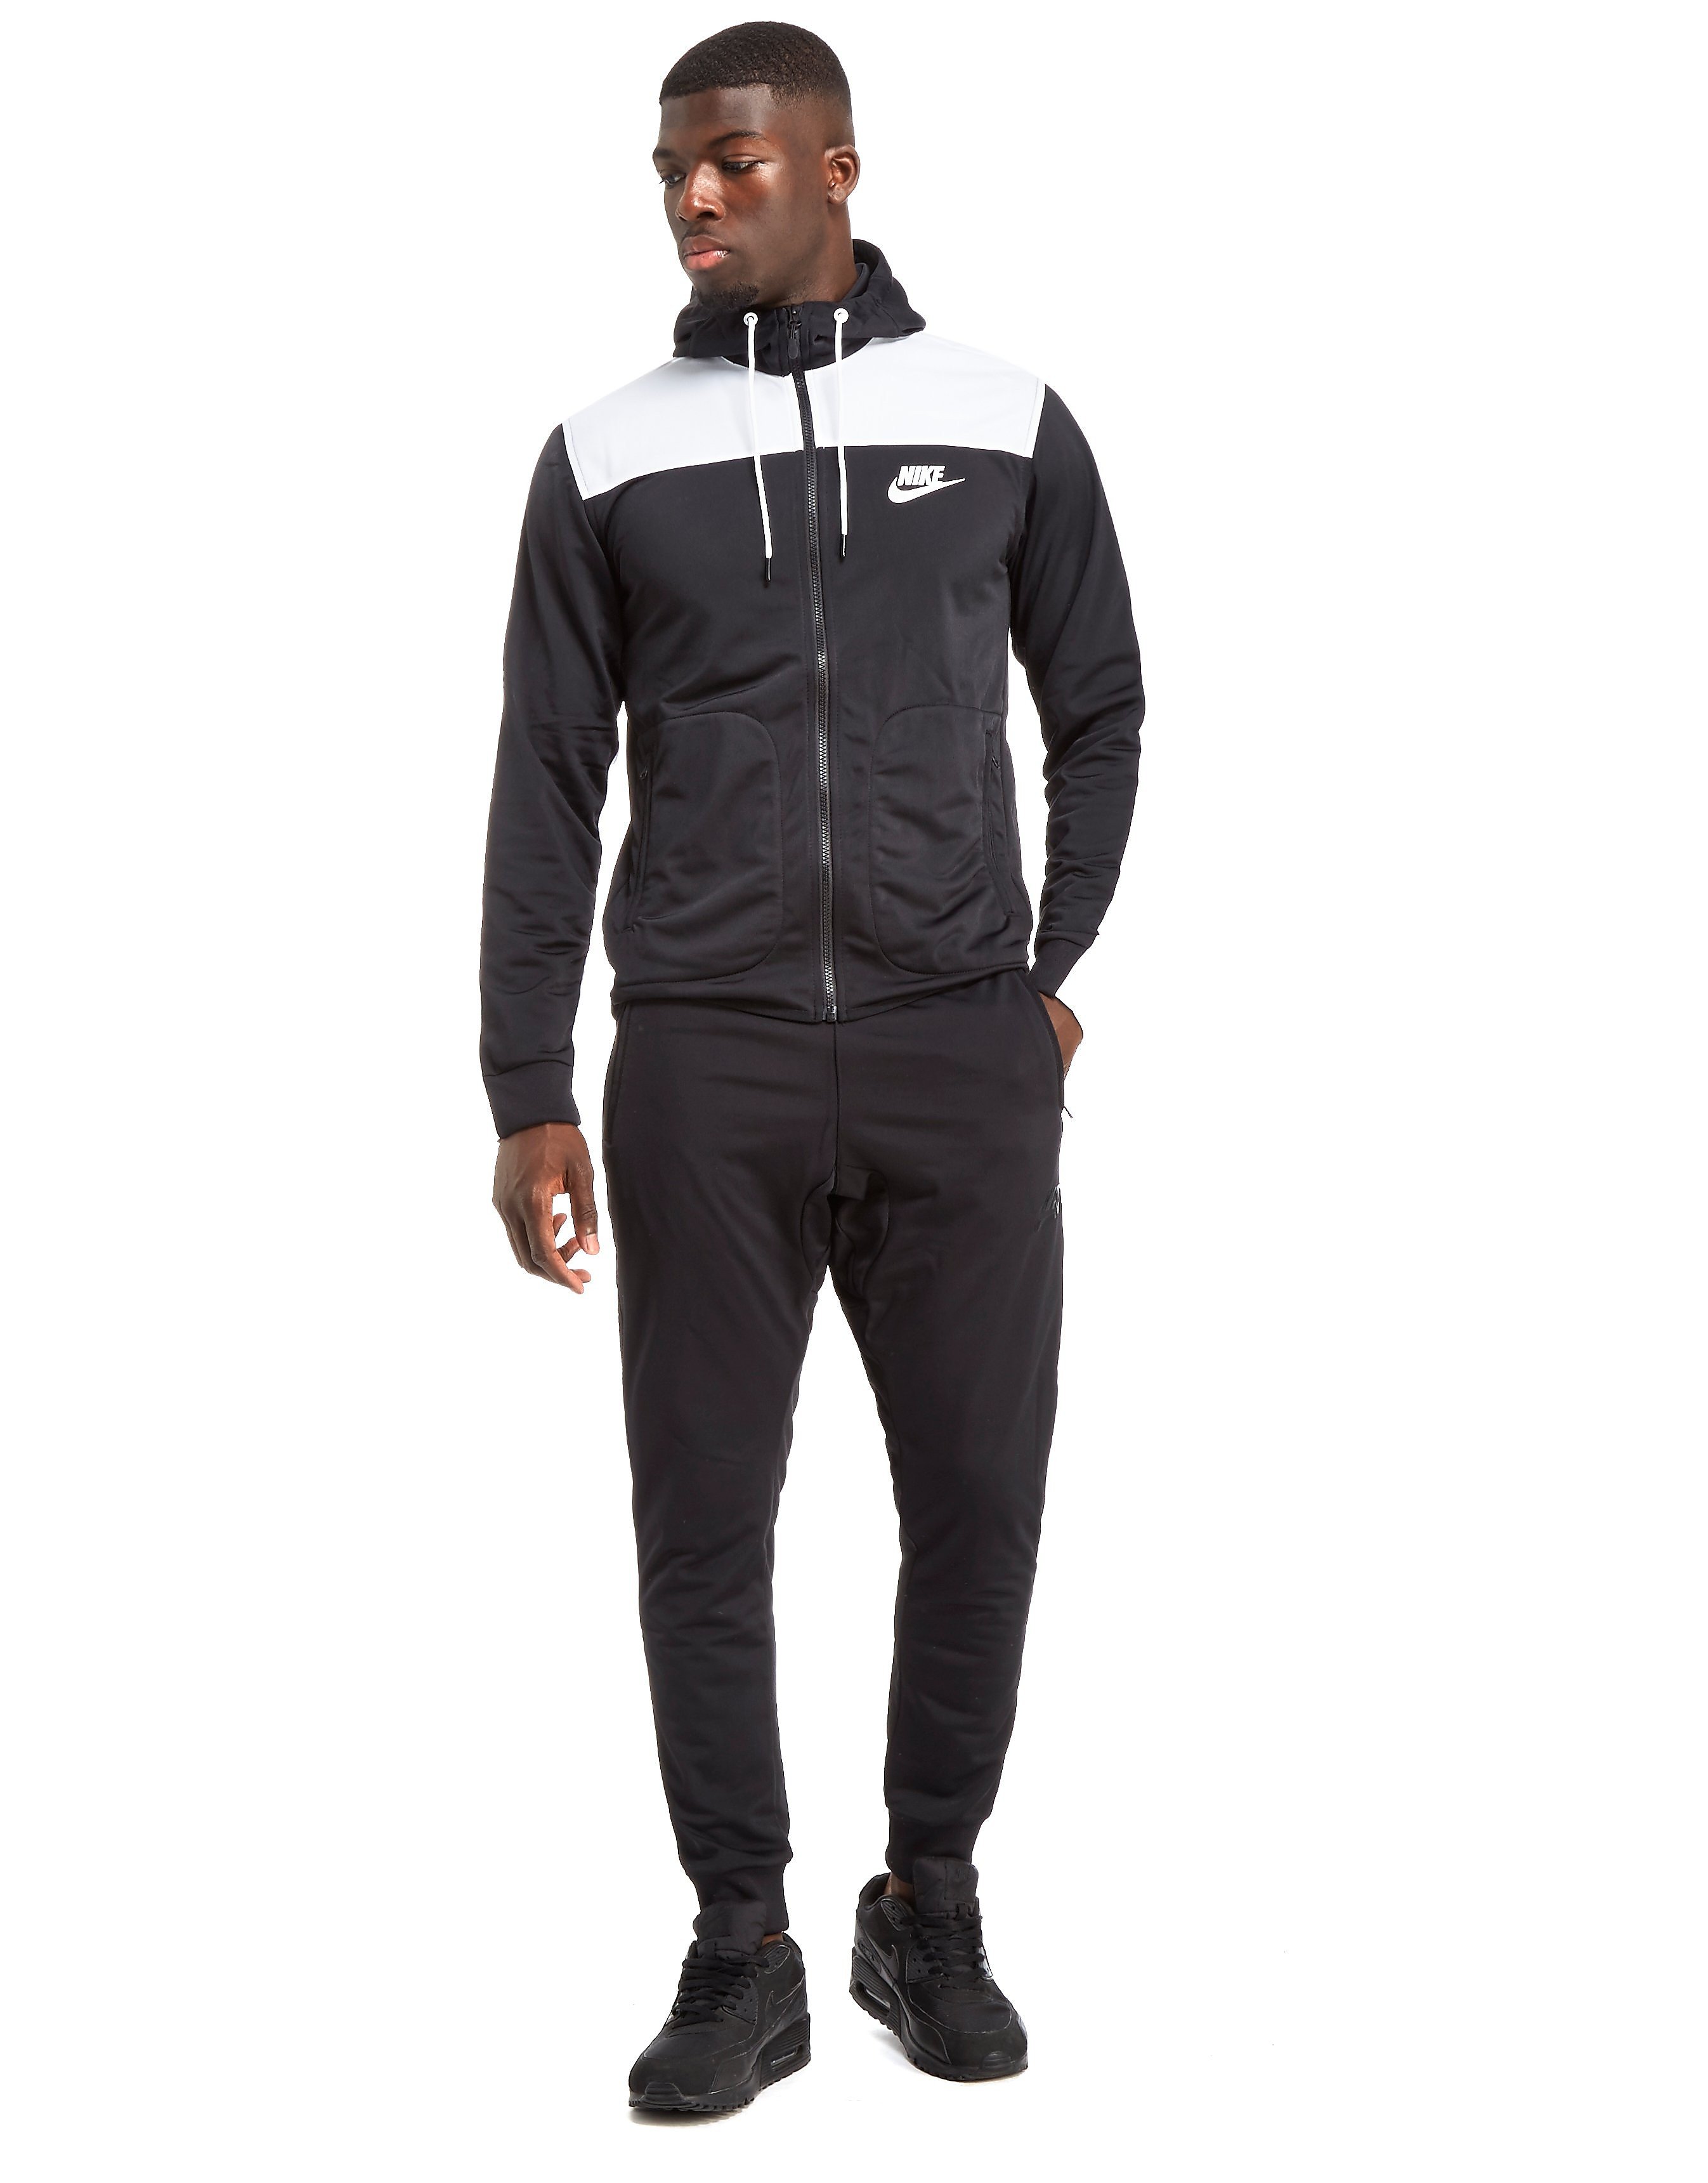 Nike Advance Suit